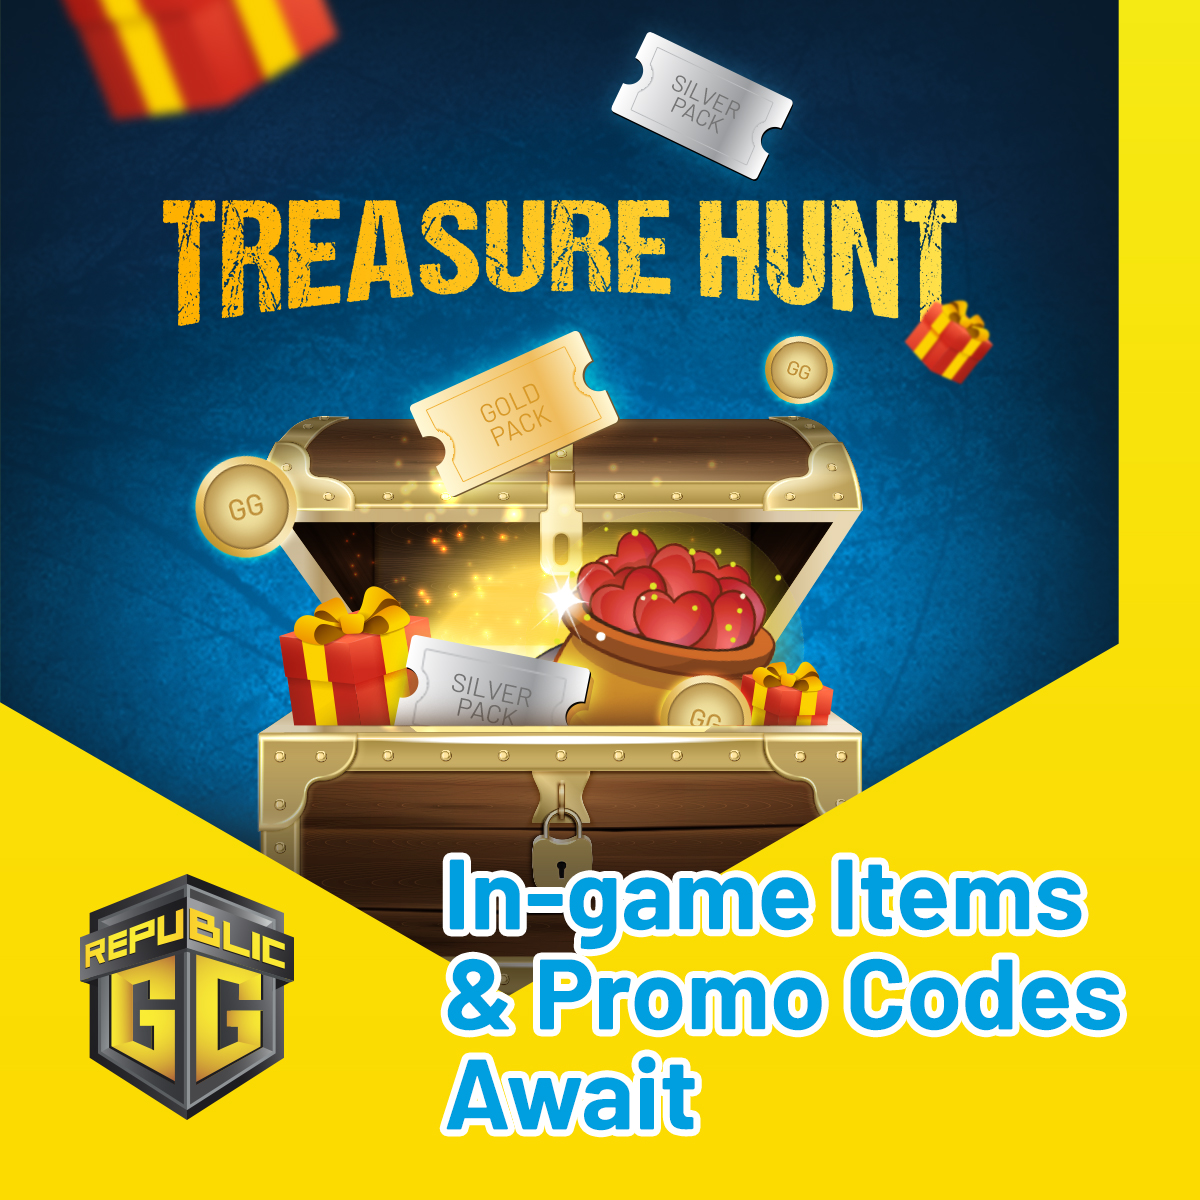 digi rgg treasure hunt